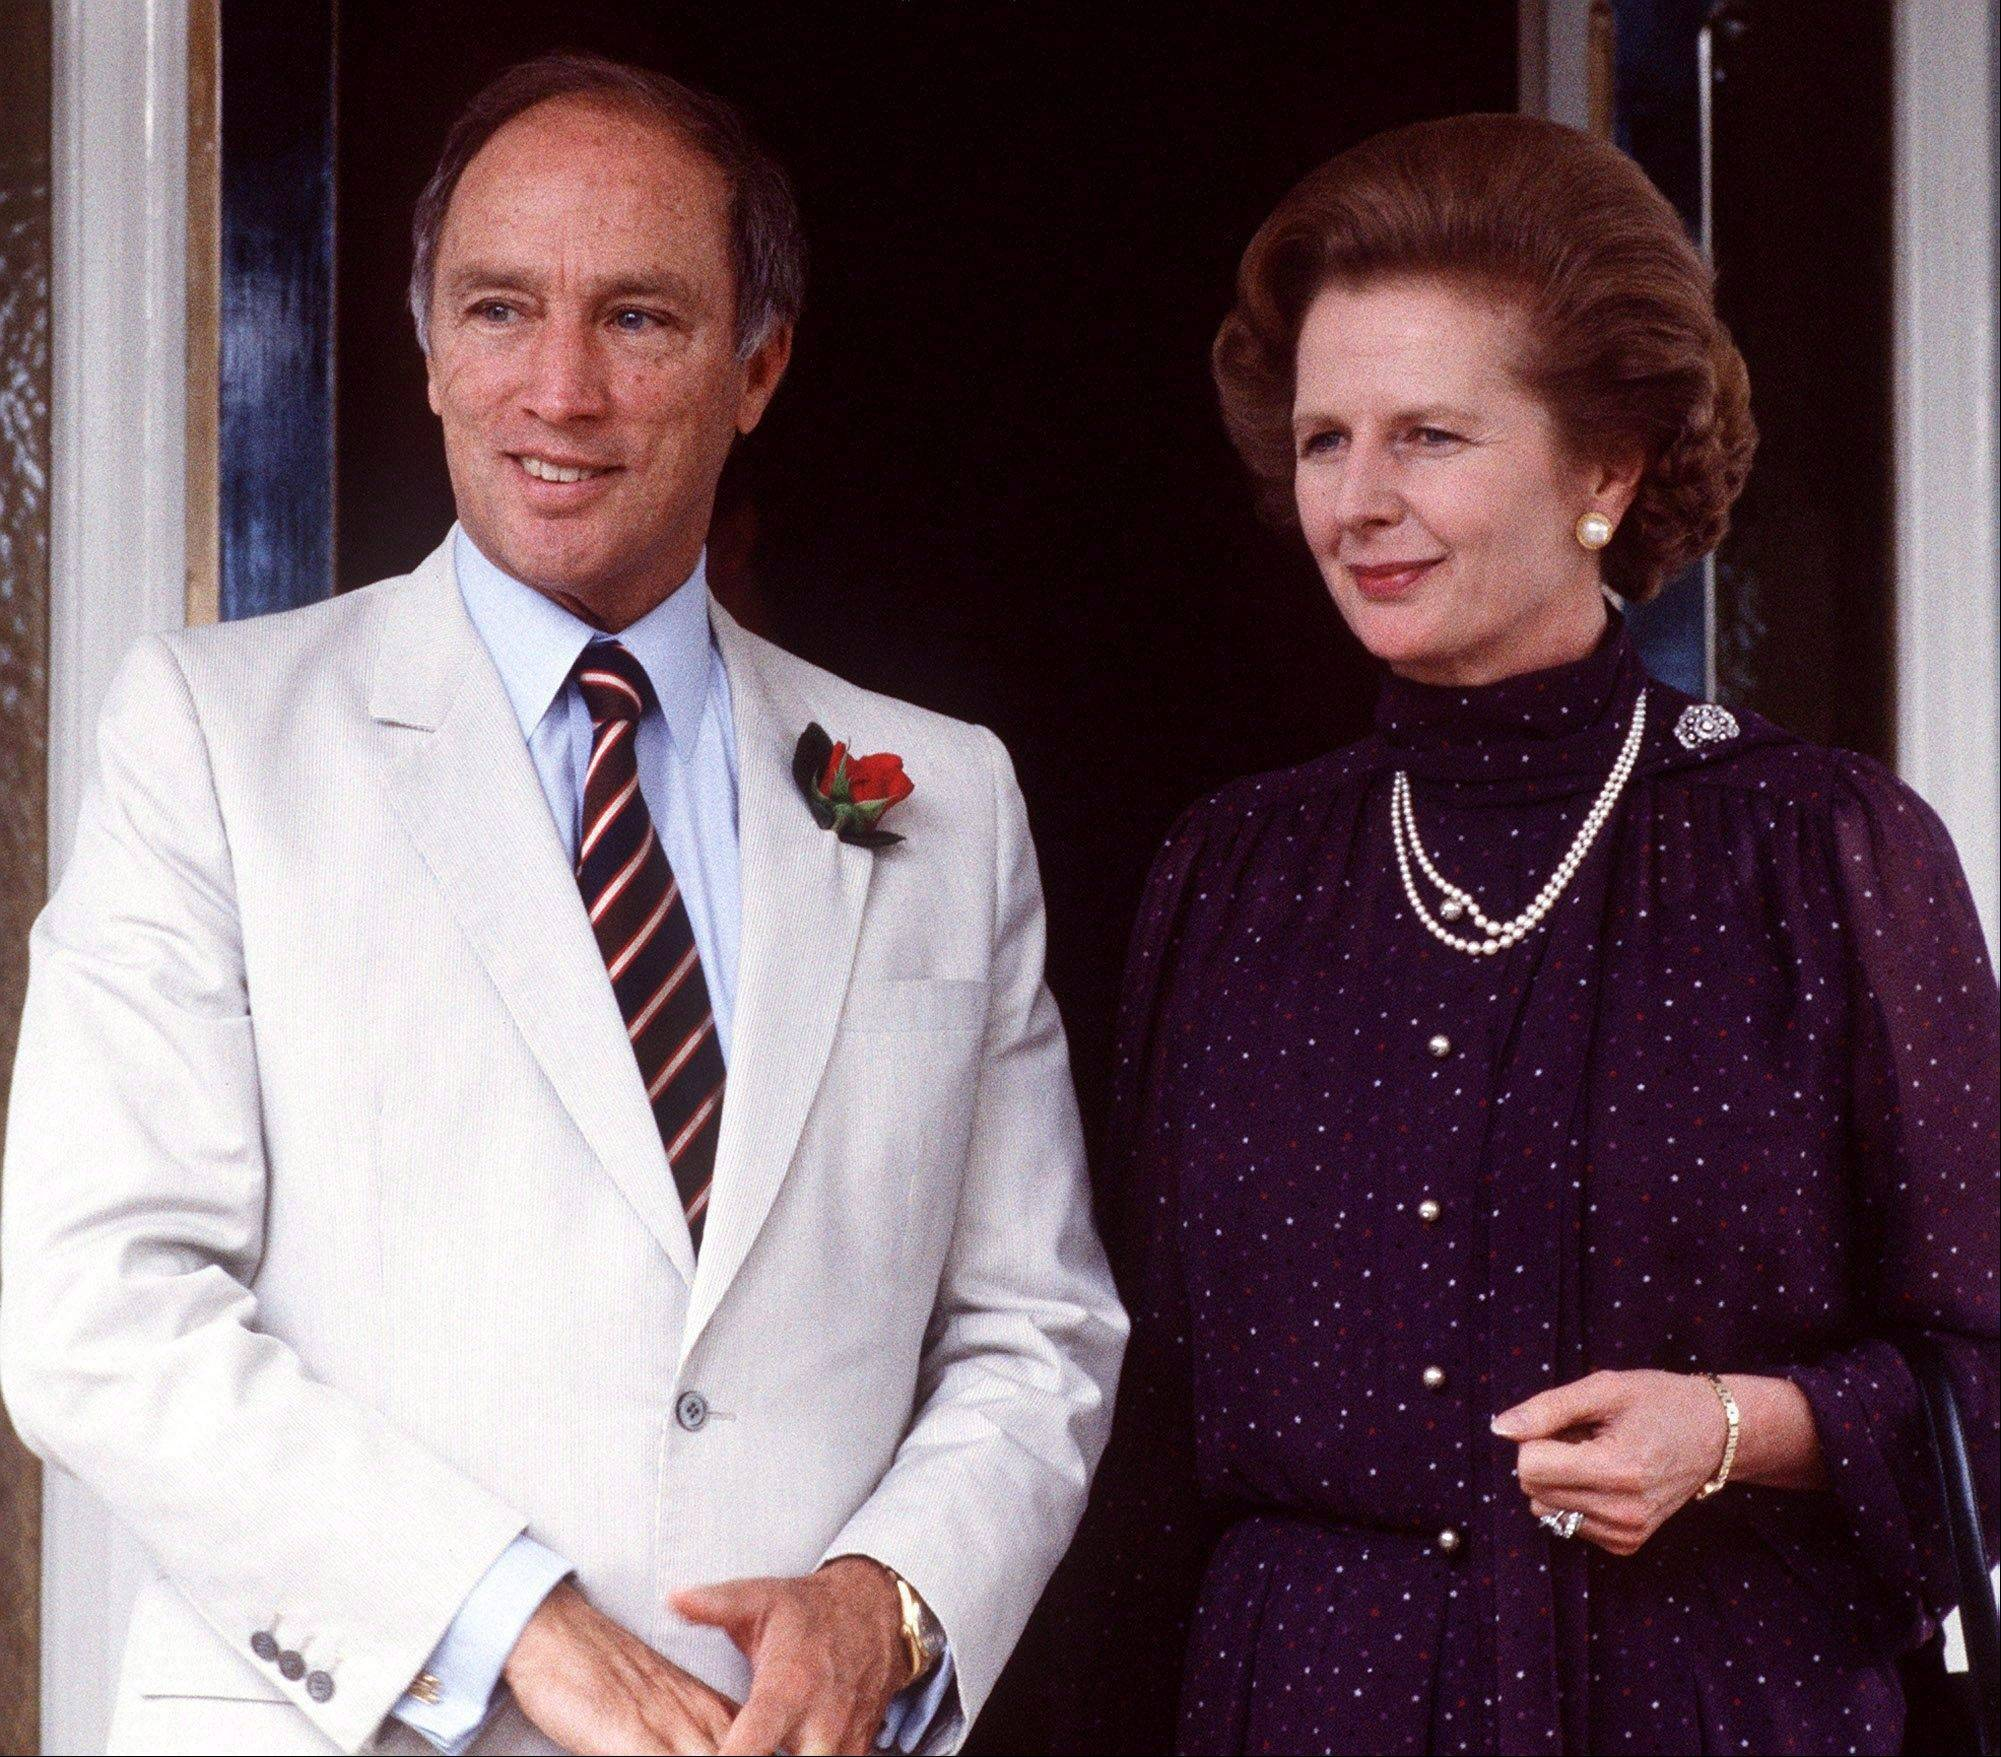 In this Oct. 4, 1981 file photo, British Prime Minister Margaret Thatcher is with Canada's Prime Minister Pierre Trudeau, in Australia. Thatchers former spokesman, Tim Bell, said that the former British Prime Minister Margaret Thatcher died Monday morning, April 8, 2013, of a stroke. She was 87.